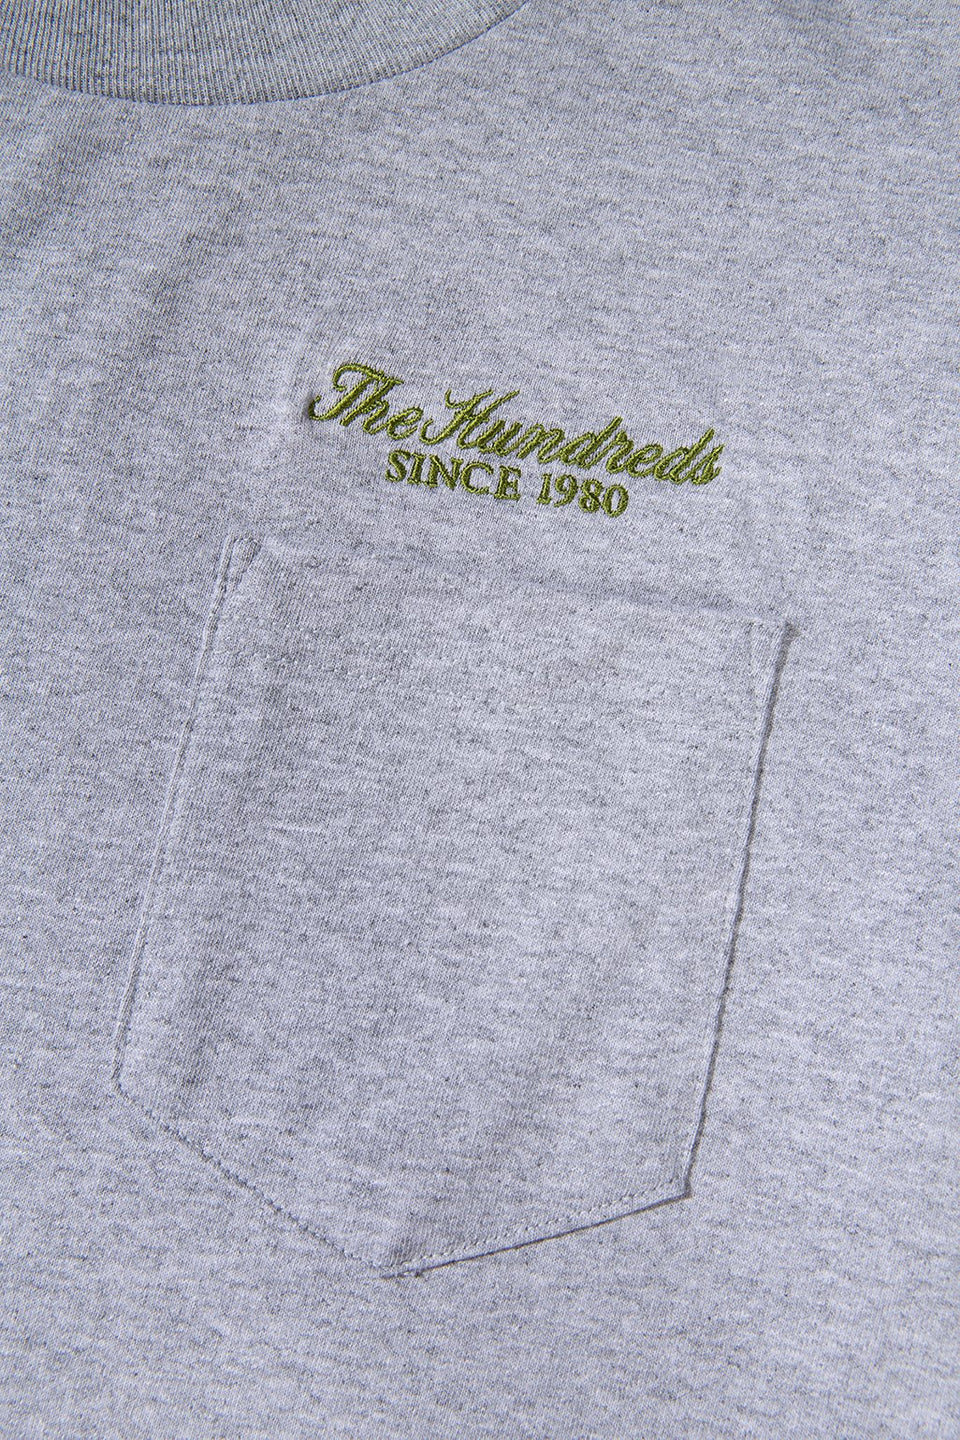 The Hundreds Rich Pocket T-Shirt TOPS Athletic Heather